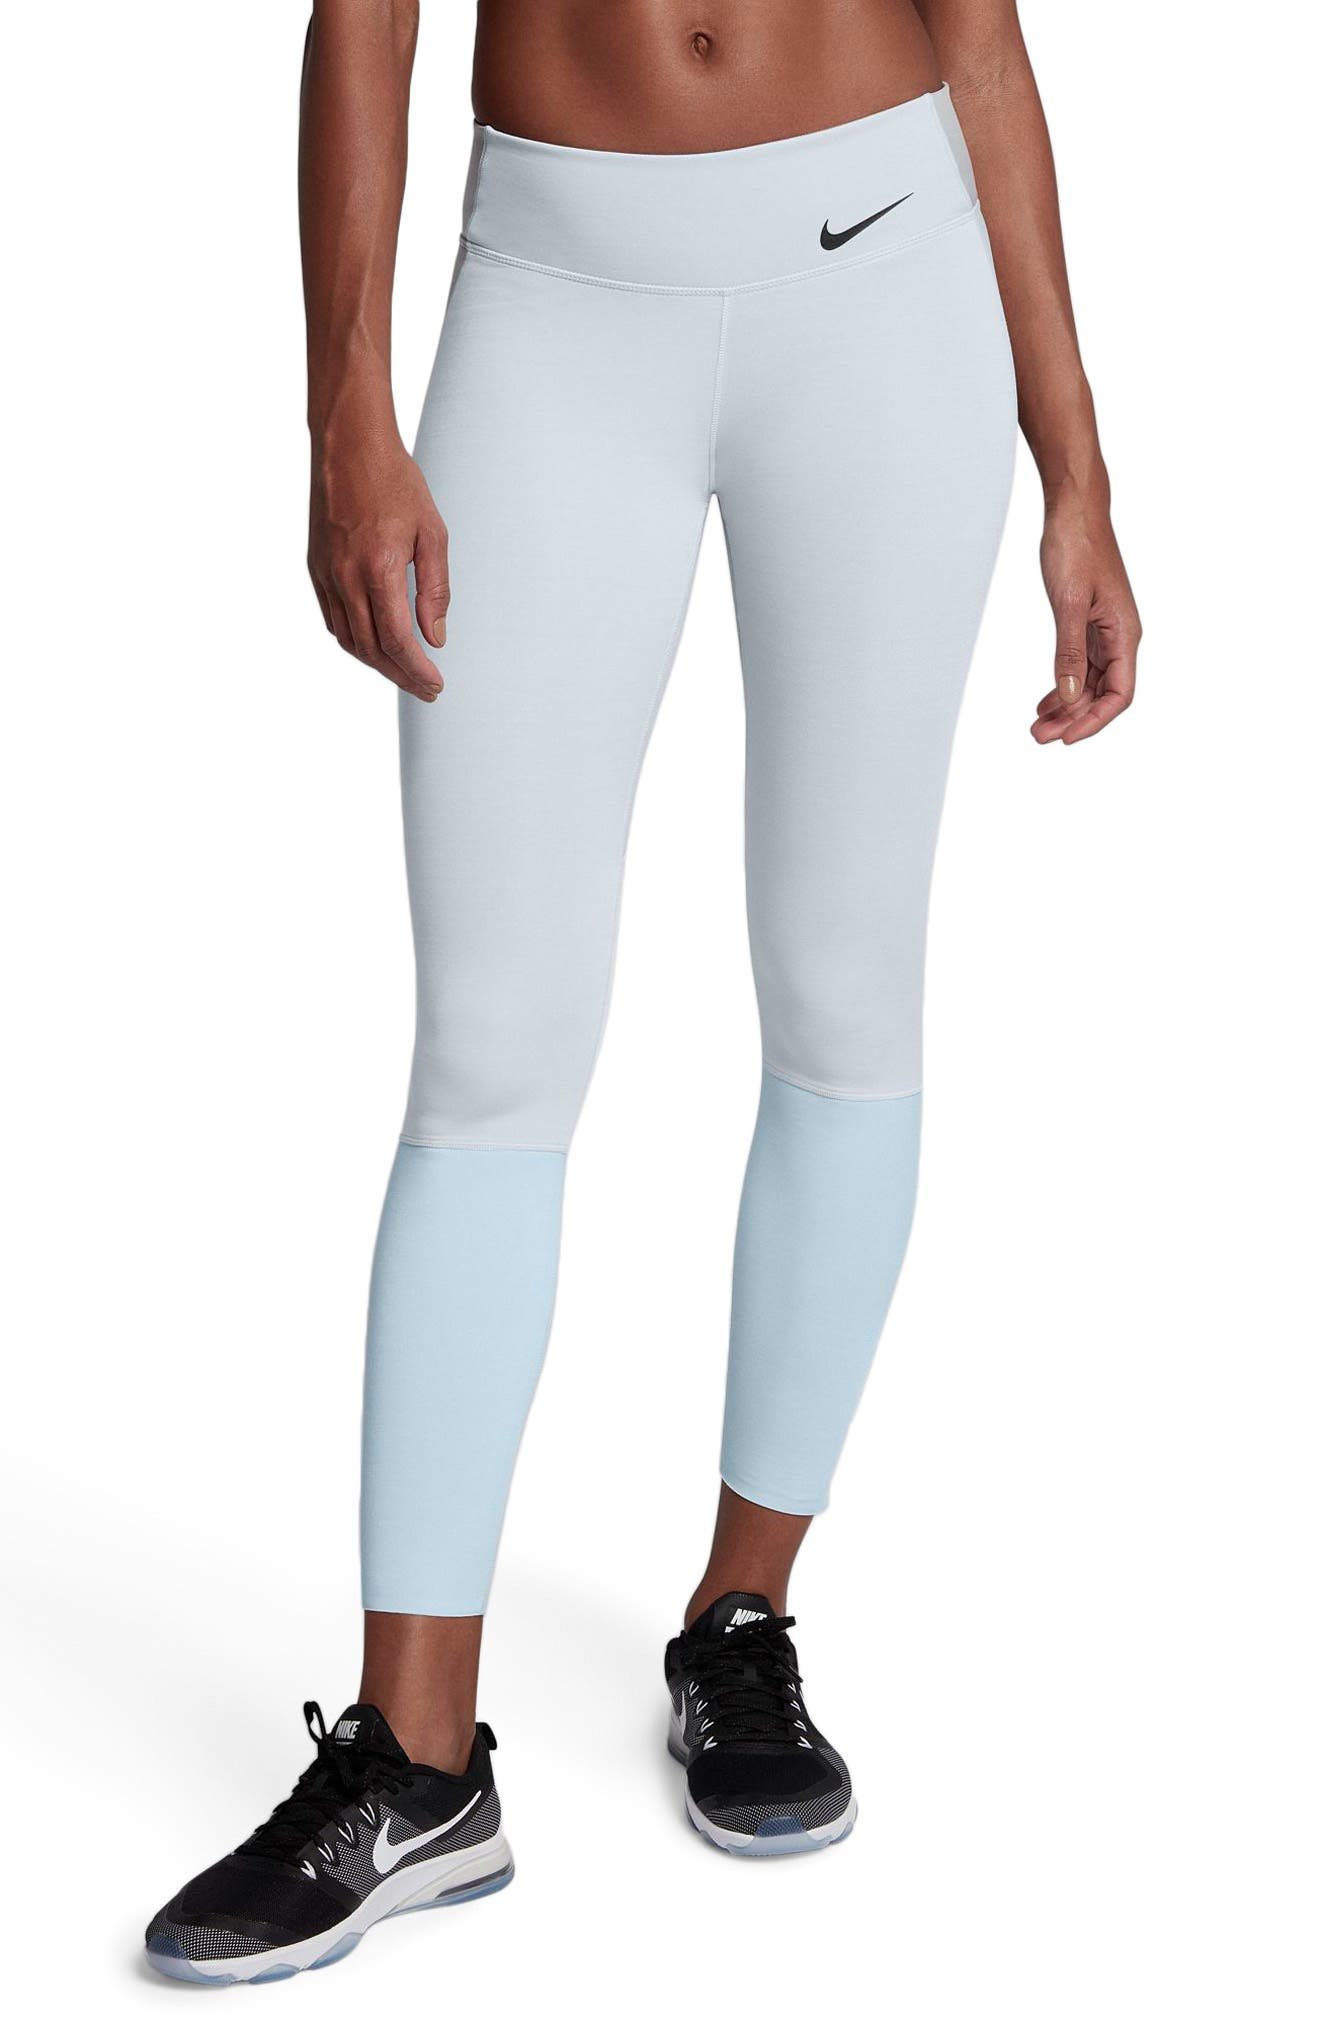 Legendary Mid Rise Zip Cuff Training Tights,                             Main thumbnail 1, color,                             Platinum/ Heather/ Blue/ Black